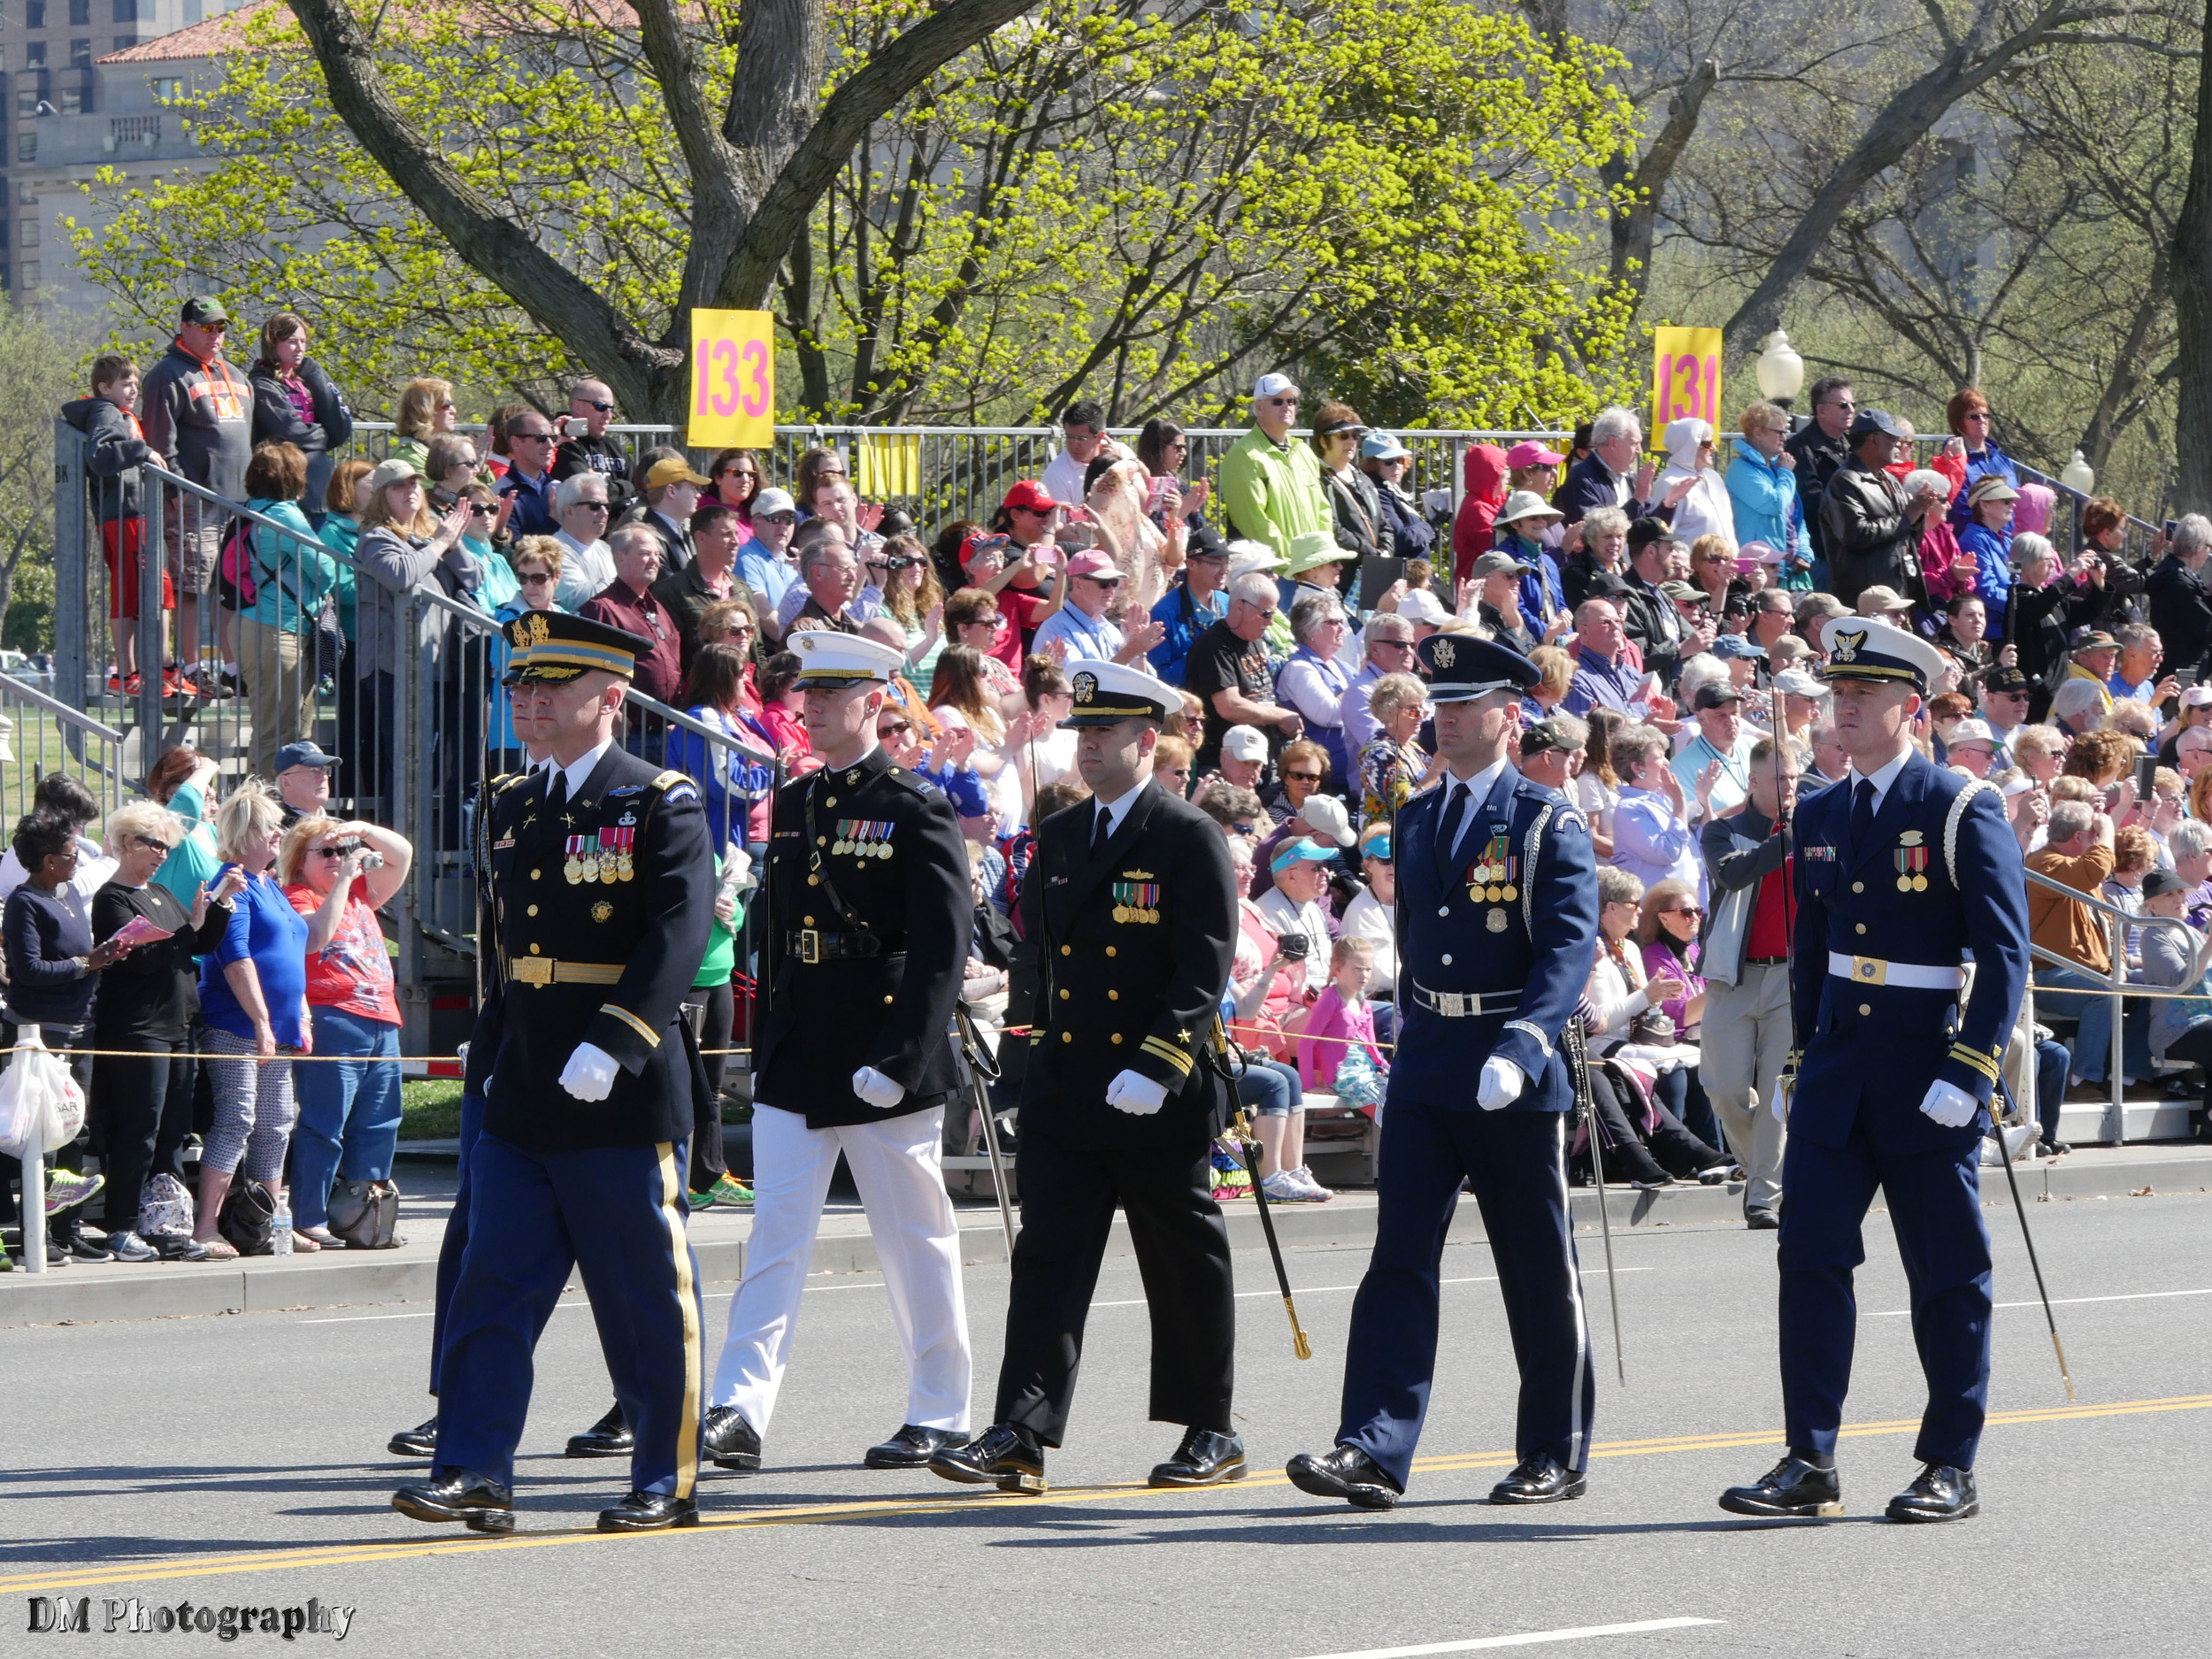 national_cherry_blossom_festival_2015_parade_03.jpg